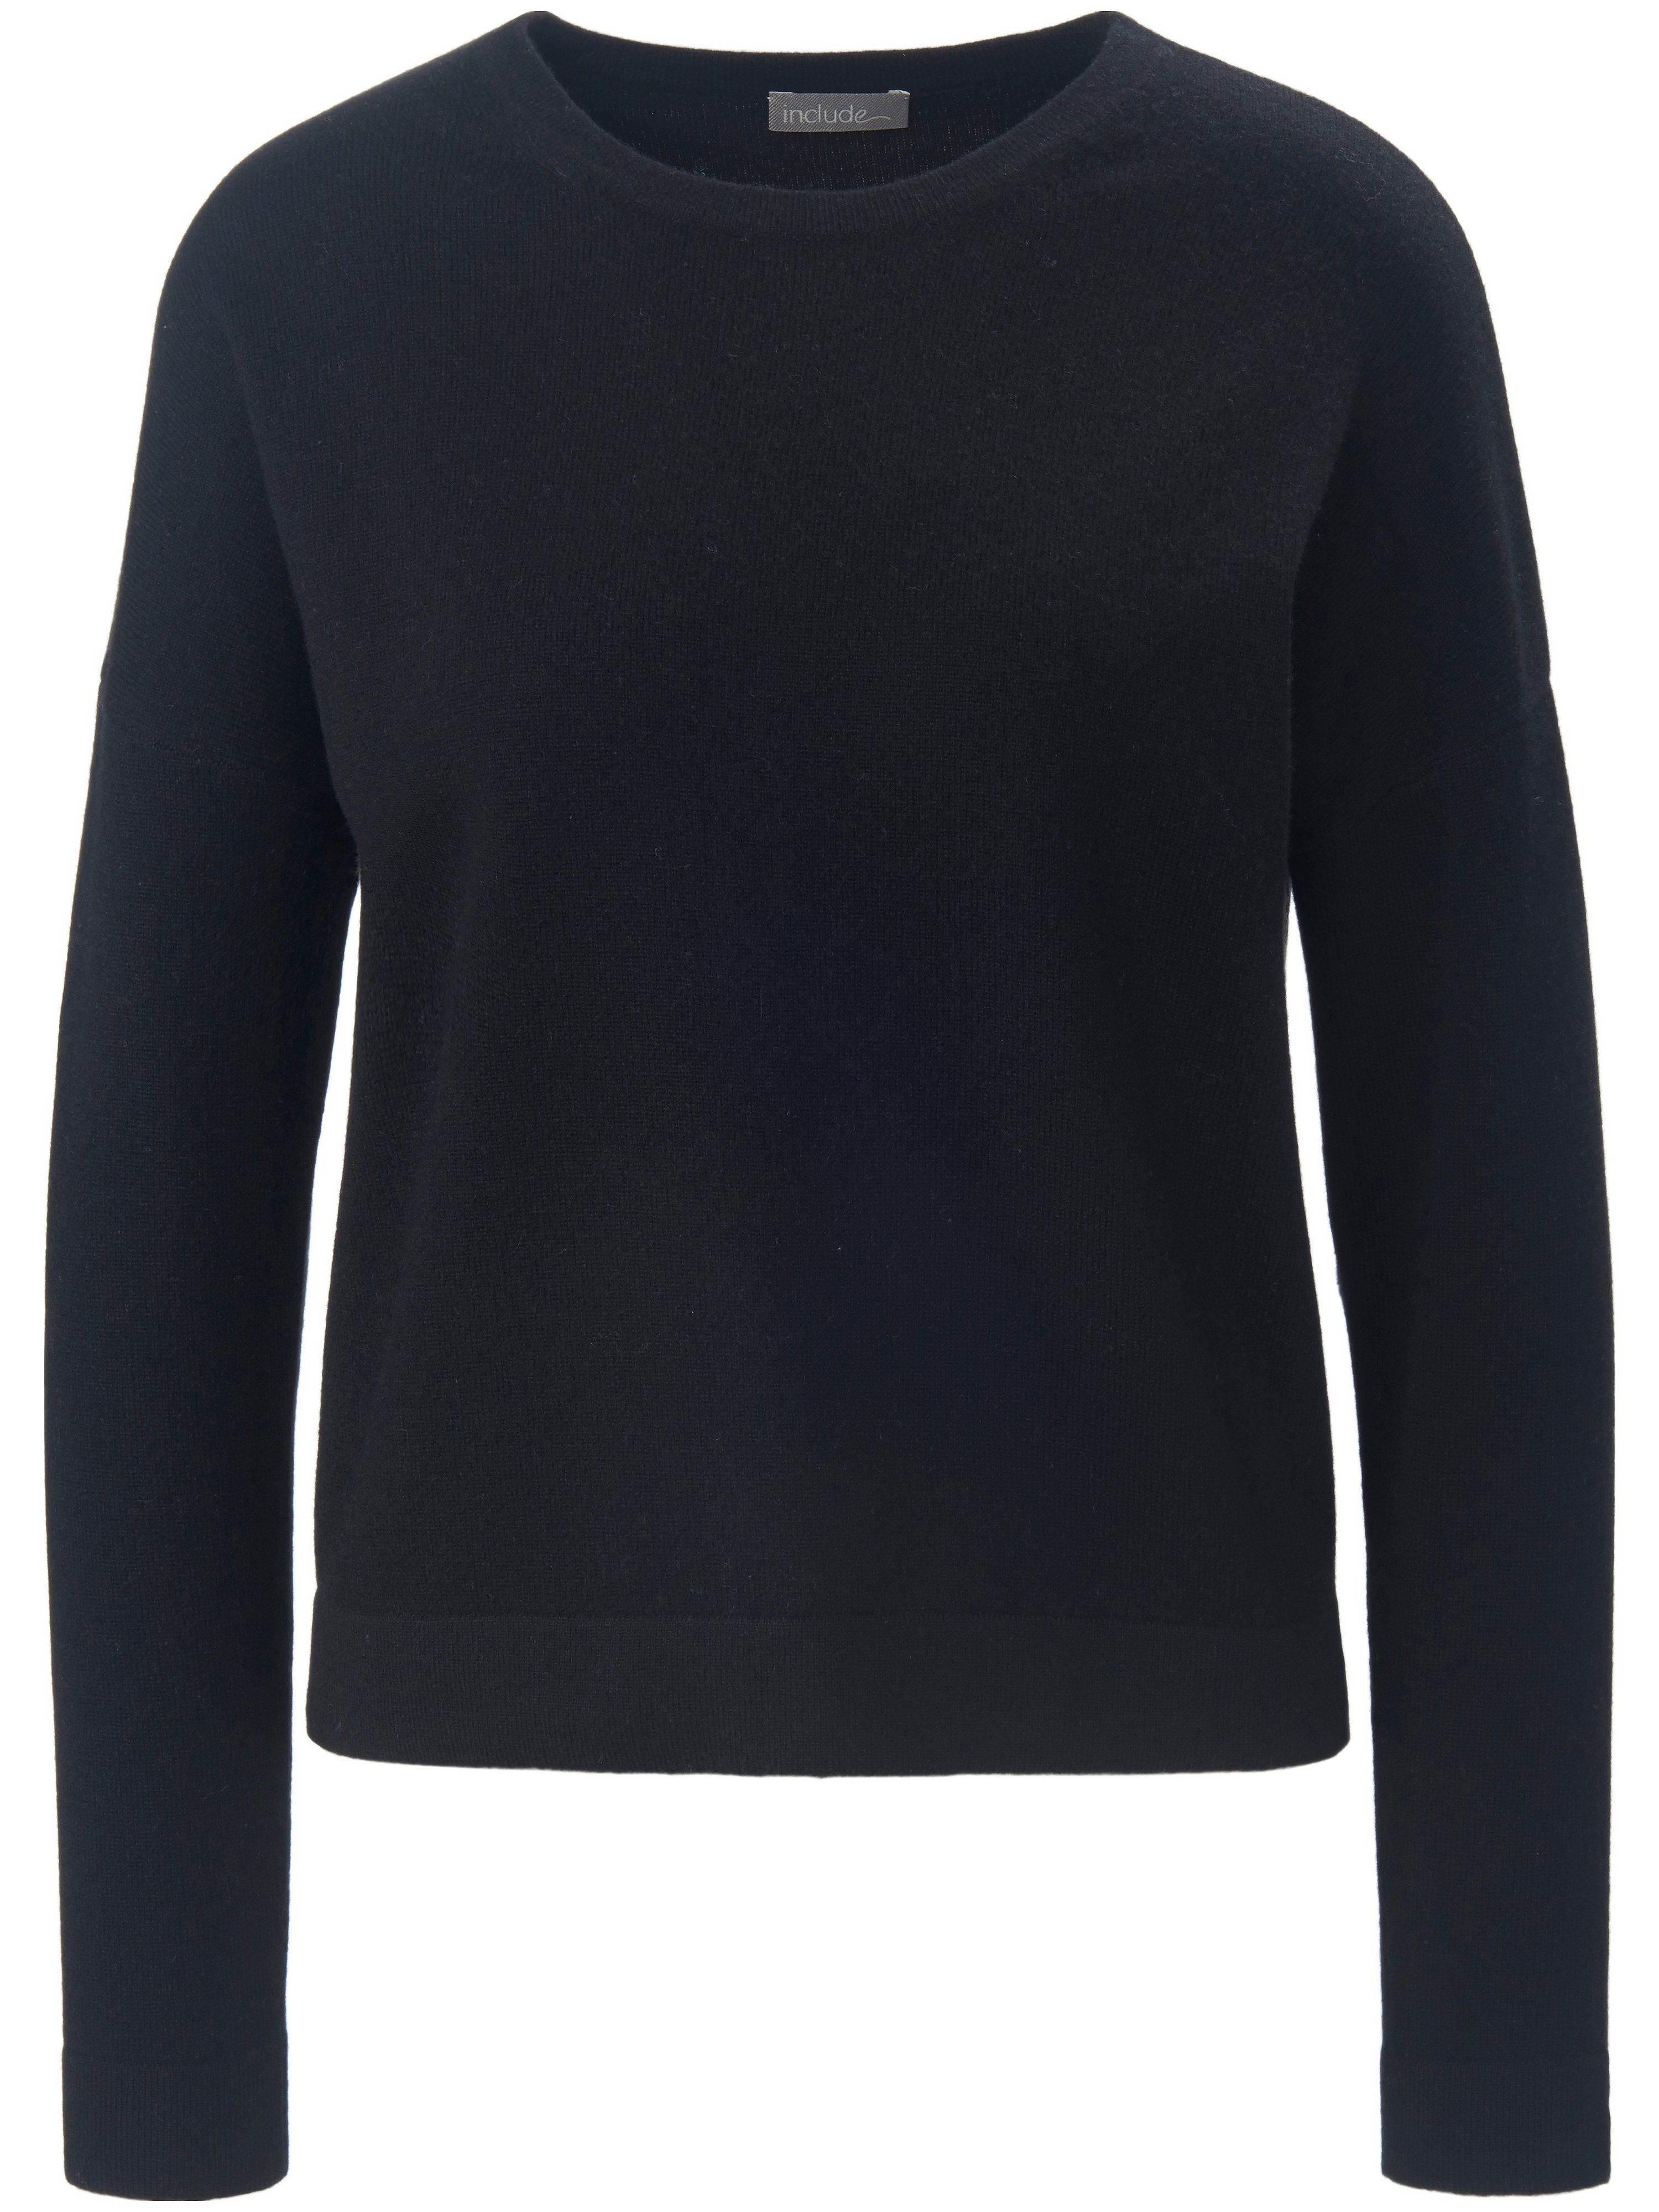 Le pull 100% cachemire  include noir taille 42